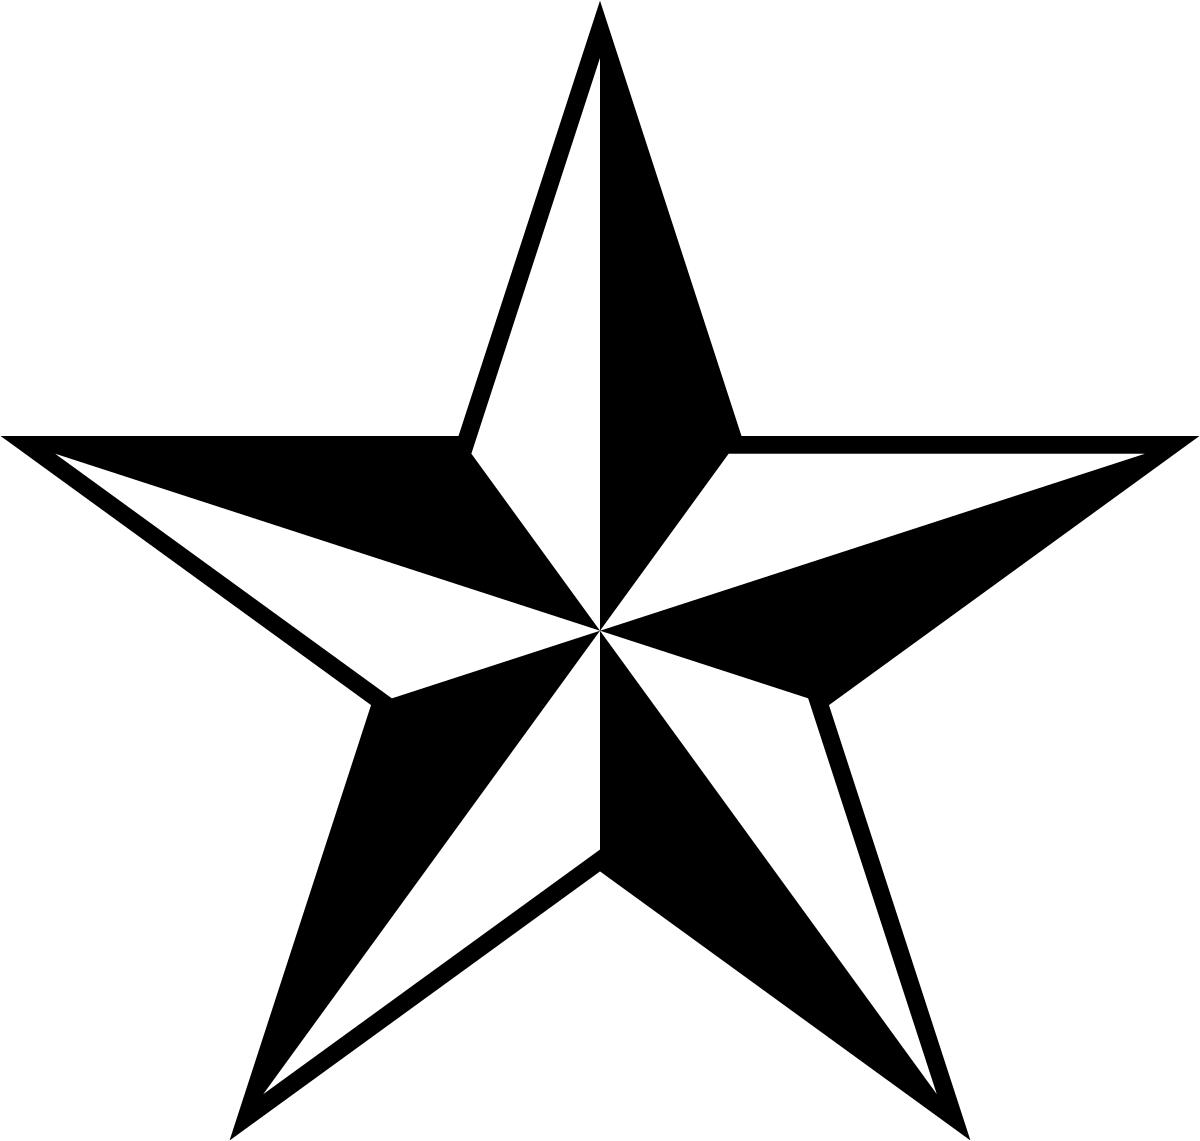 Clipart waves nautical. Star images group wikipedia